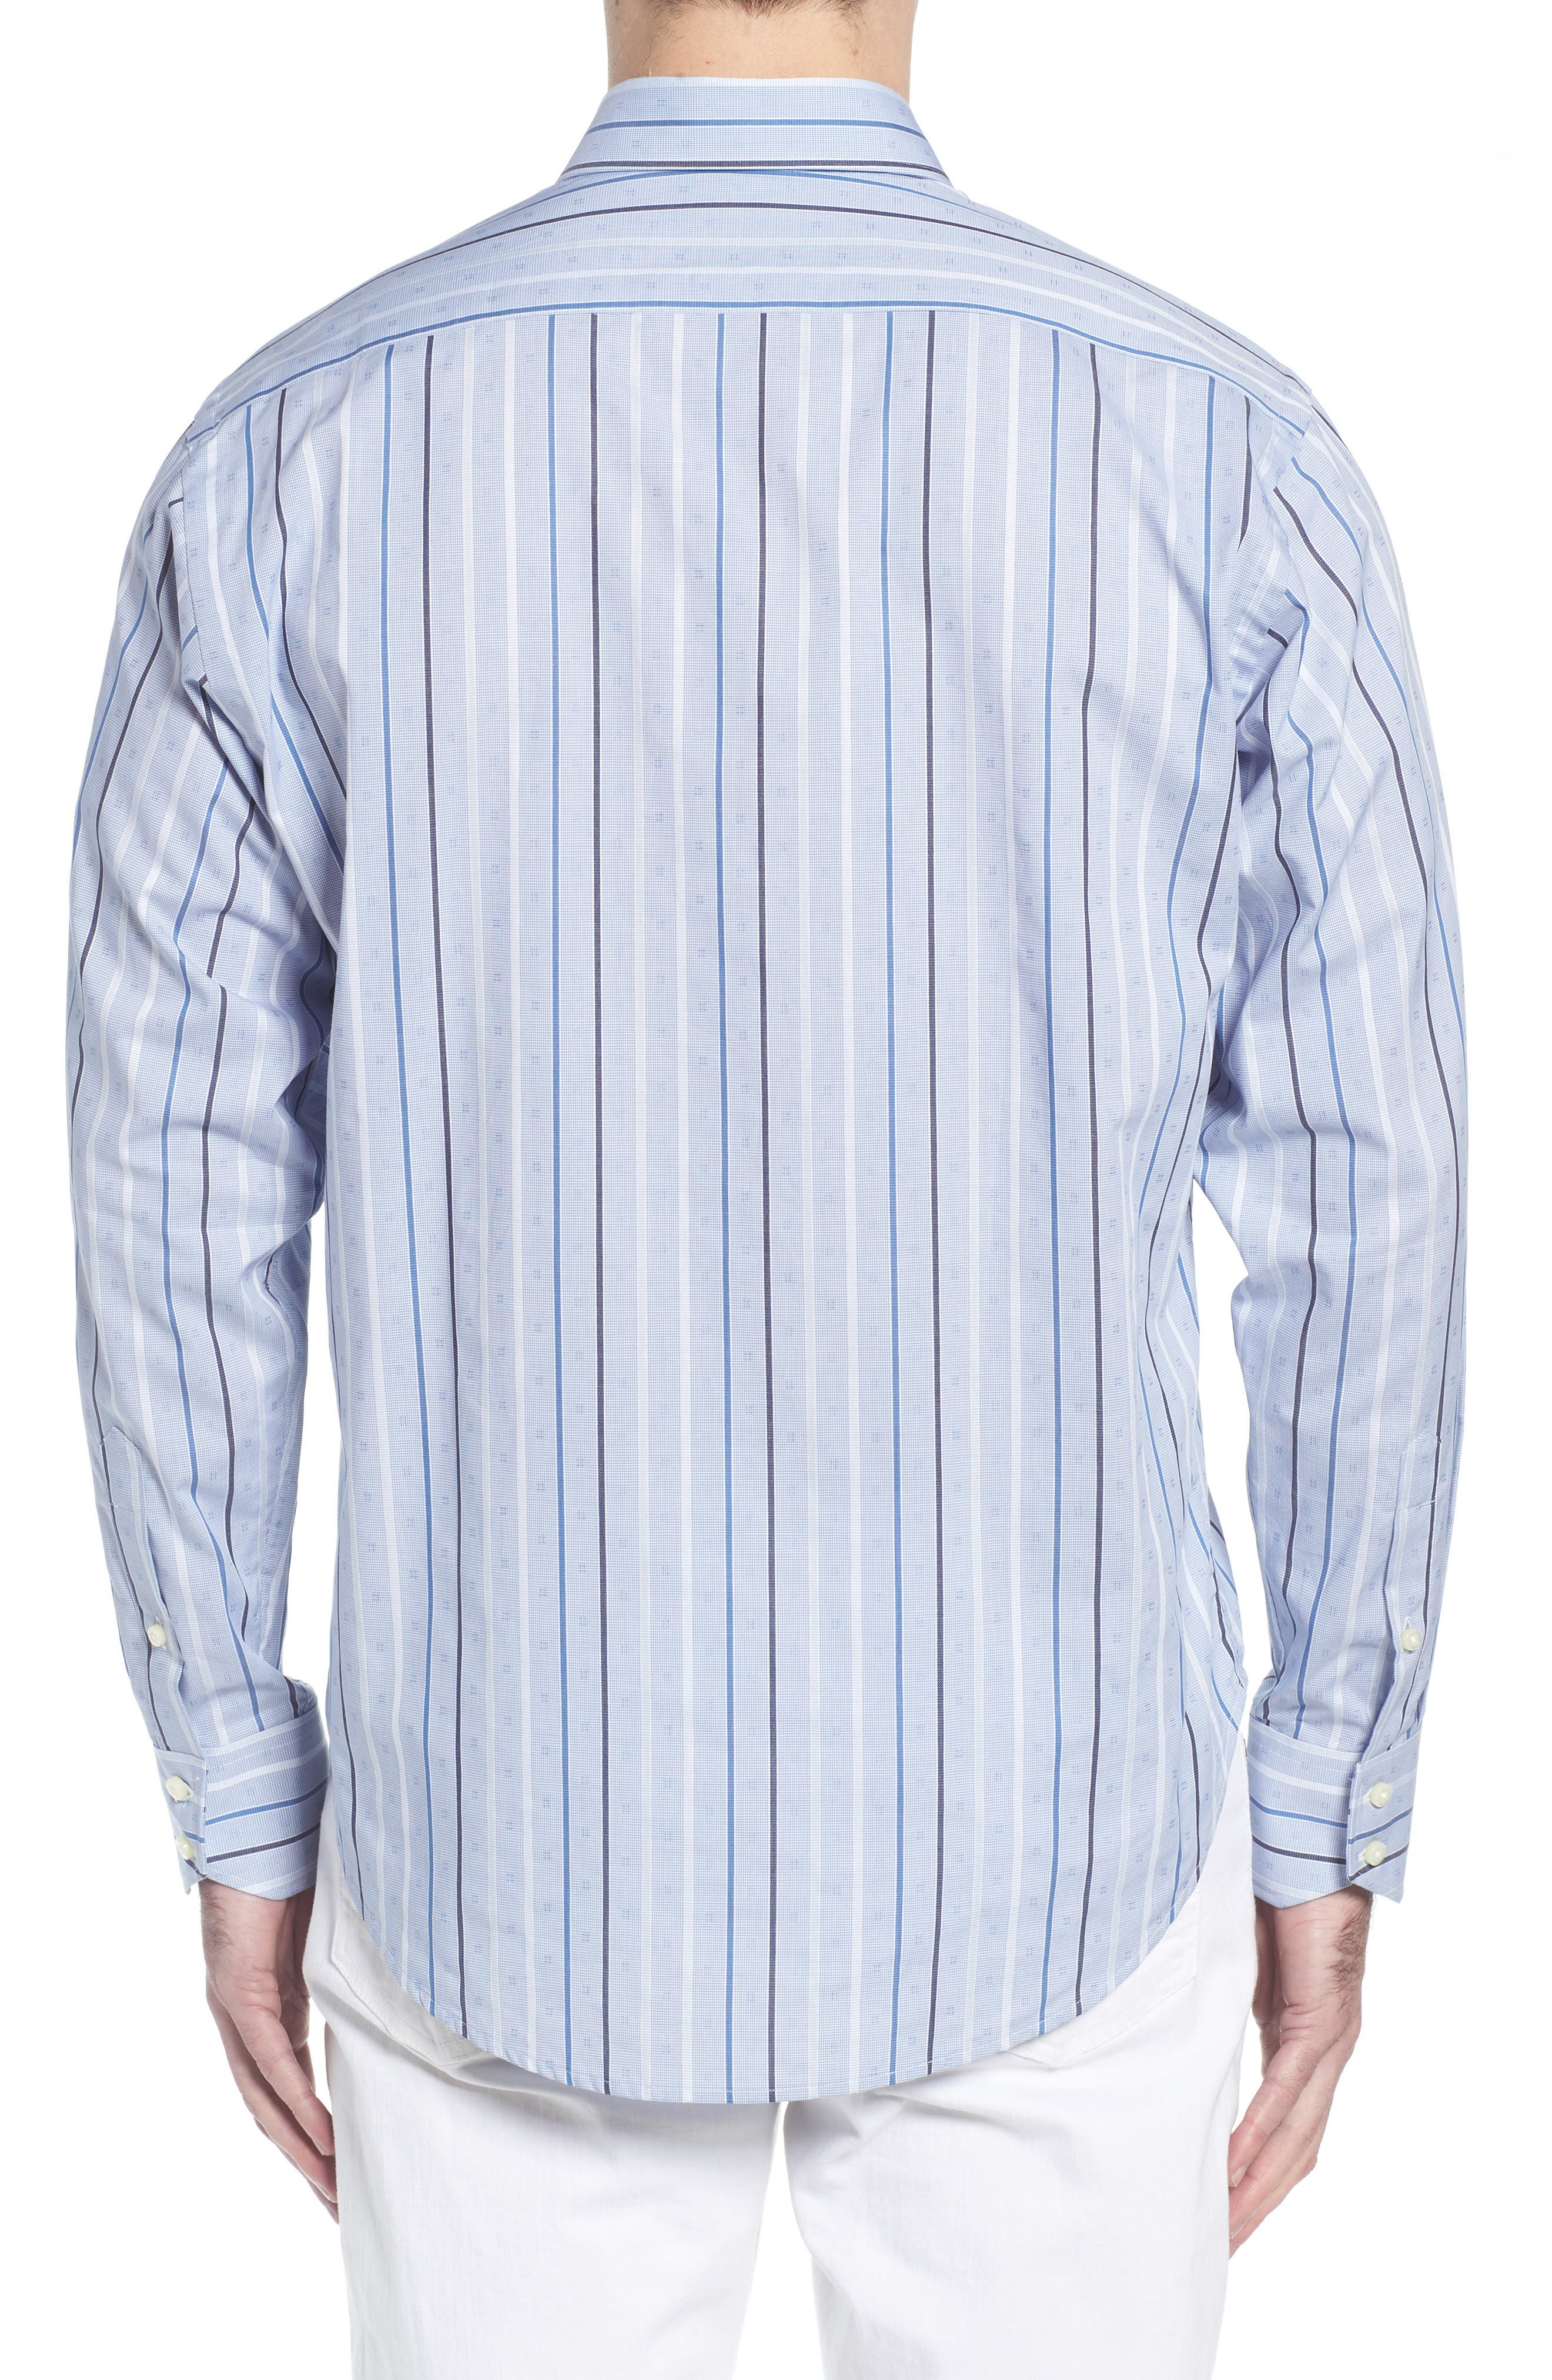 THOMAS DEAN,                             Regular Fit Check Sport Shirt,                             Alternate thumbnail 2, color,                             400